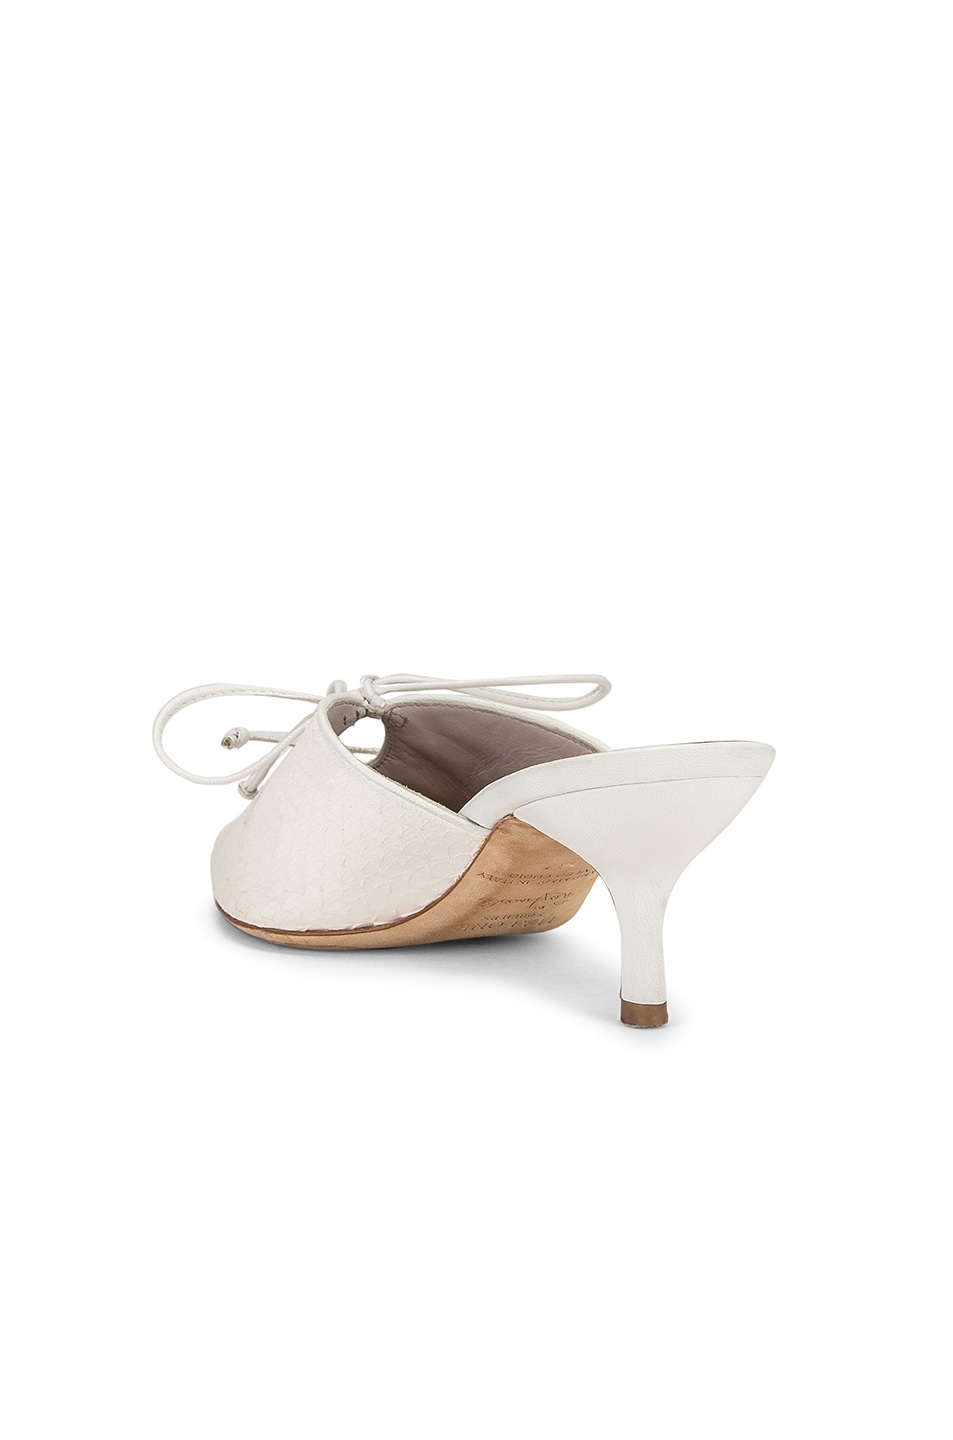 Image 3 of Malone Souliers Victoria MS 45 Heel in White